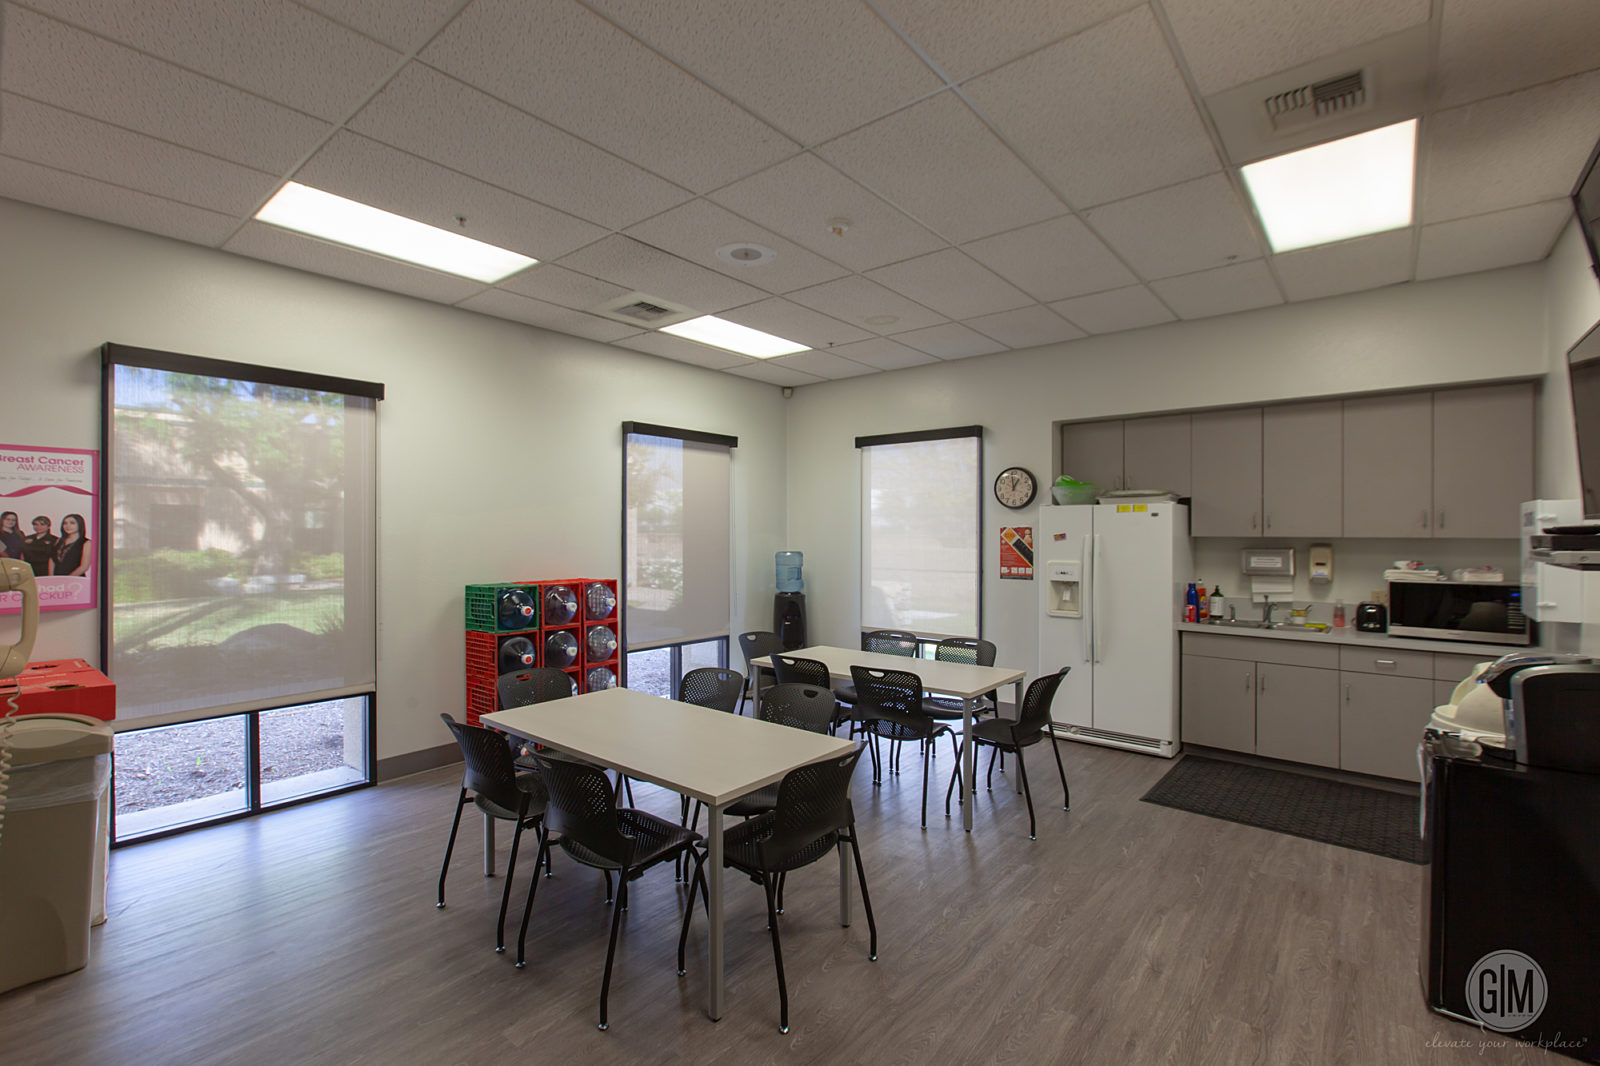 COSB Coroner's Lunch Room Makeover